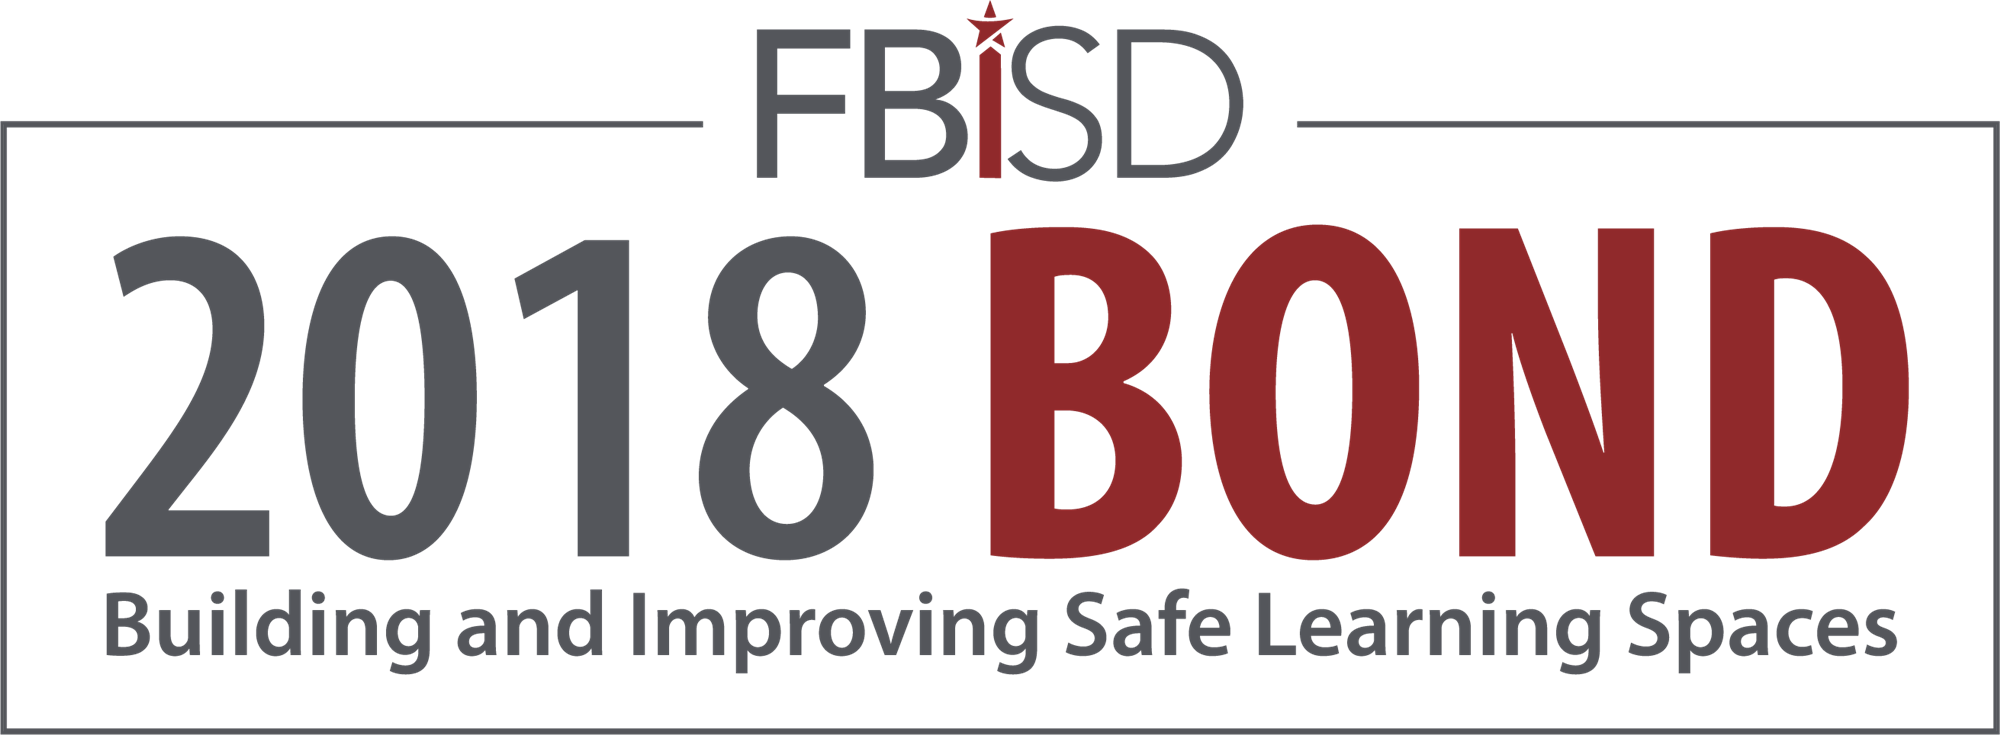 2018 Bond Logo - Building and Improving Safe Learning Spaces